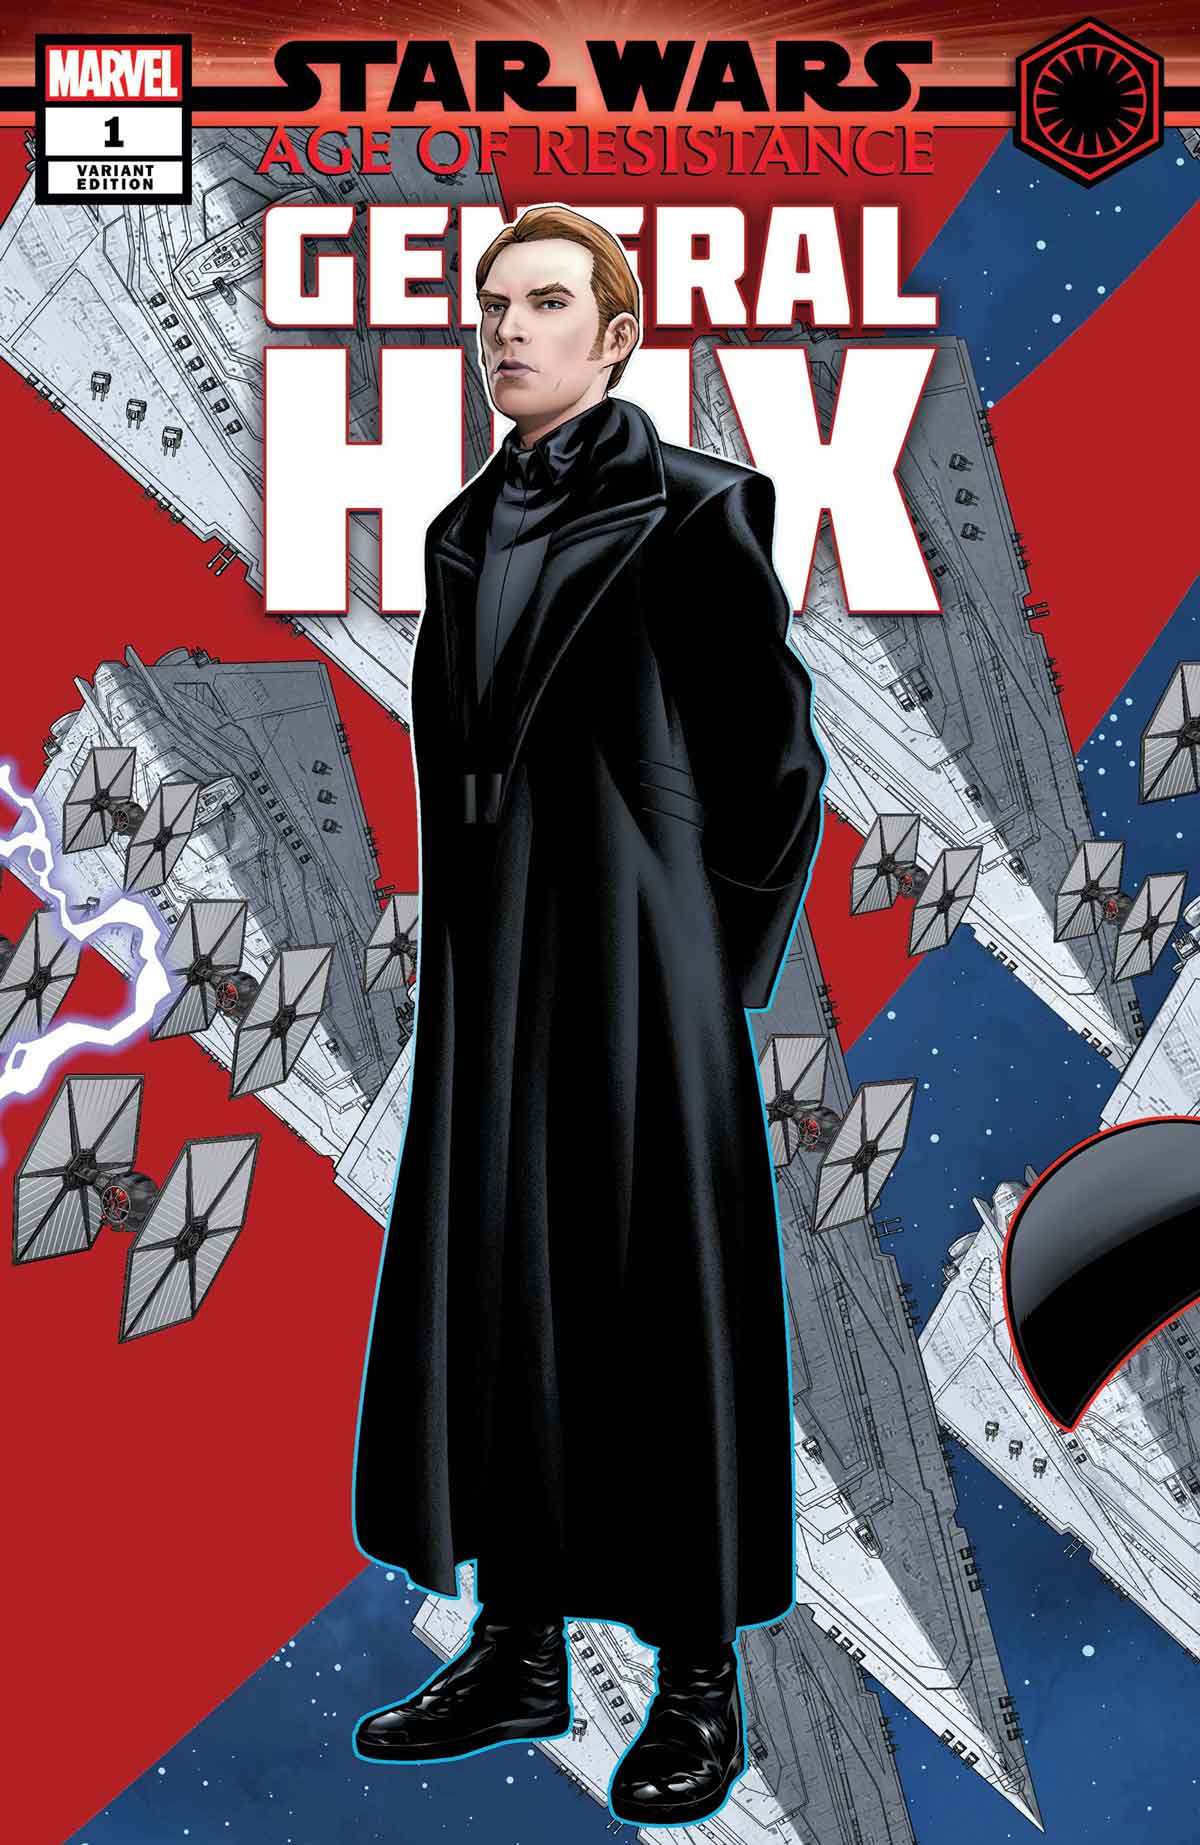 Star Wars: Age of Resistance general hux